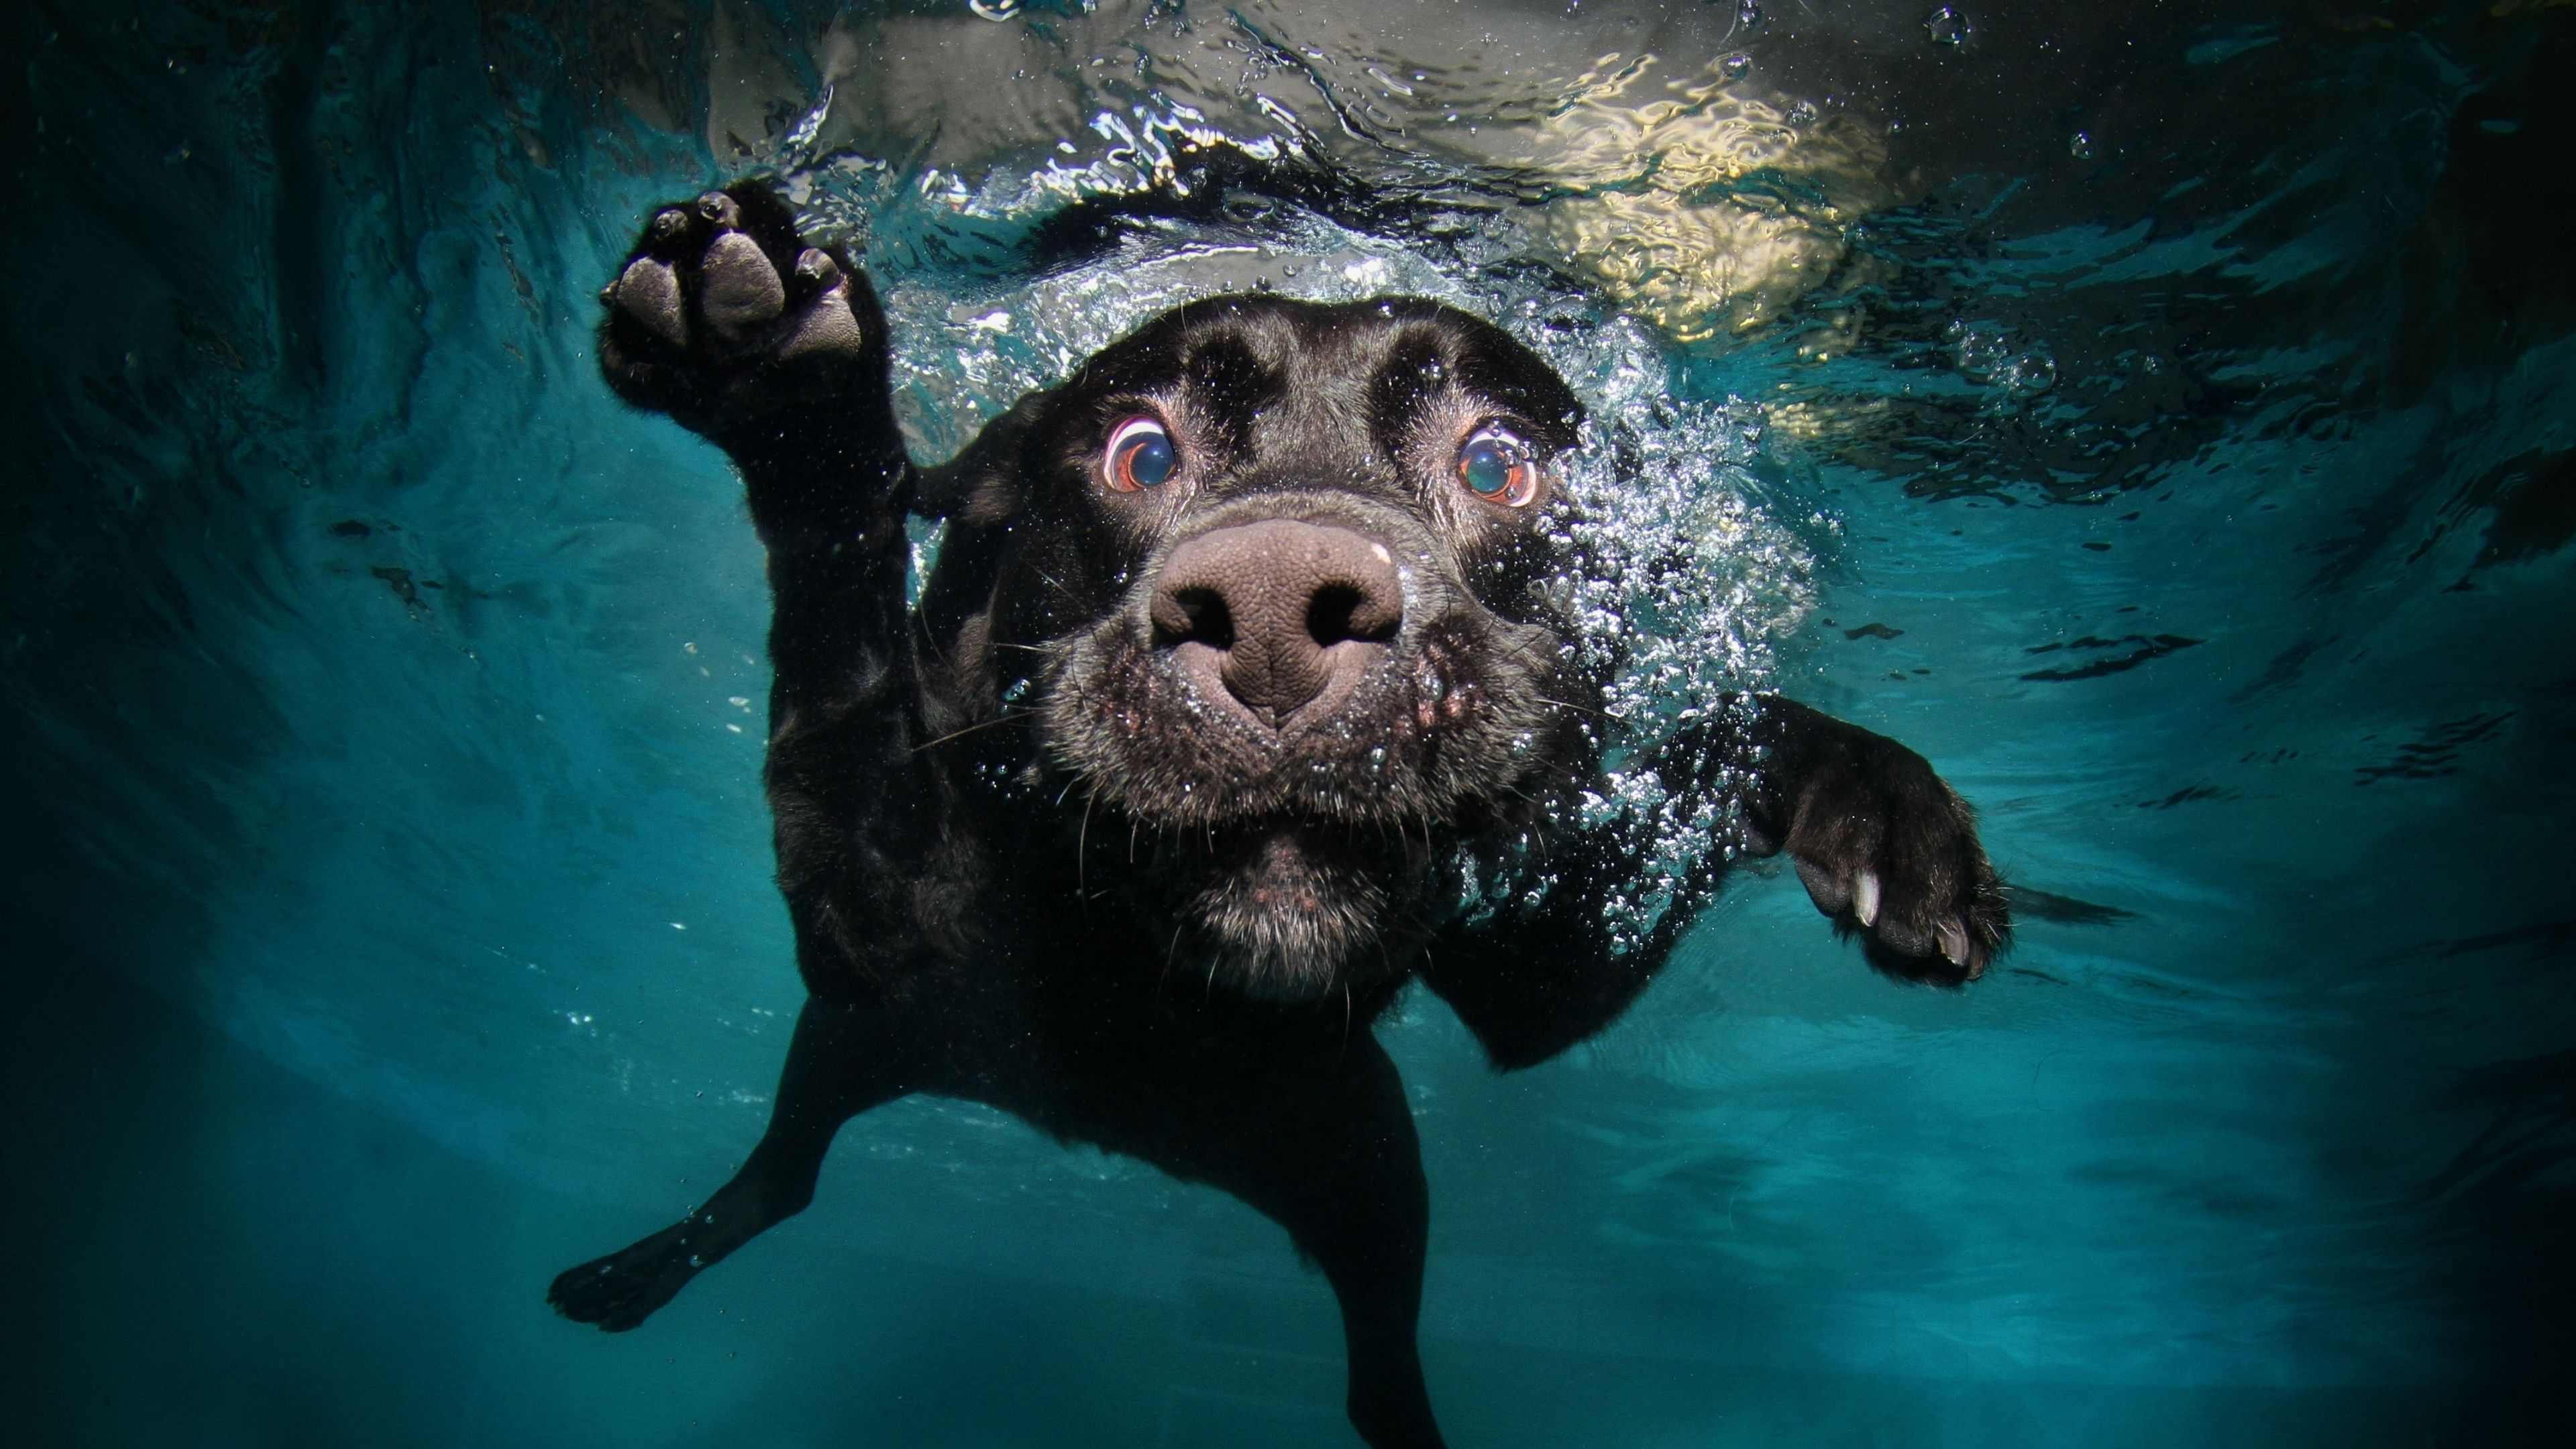 Download Wallpaper 3840x2160 Dog Black Underwater Swimming Water 4k Ultra Hd Hd Background Underwater Dogs Dog Photos Dog Swimming